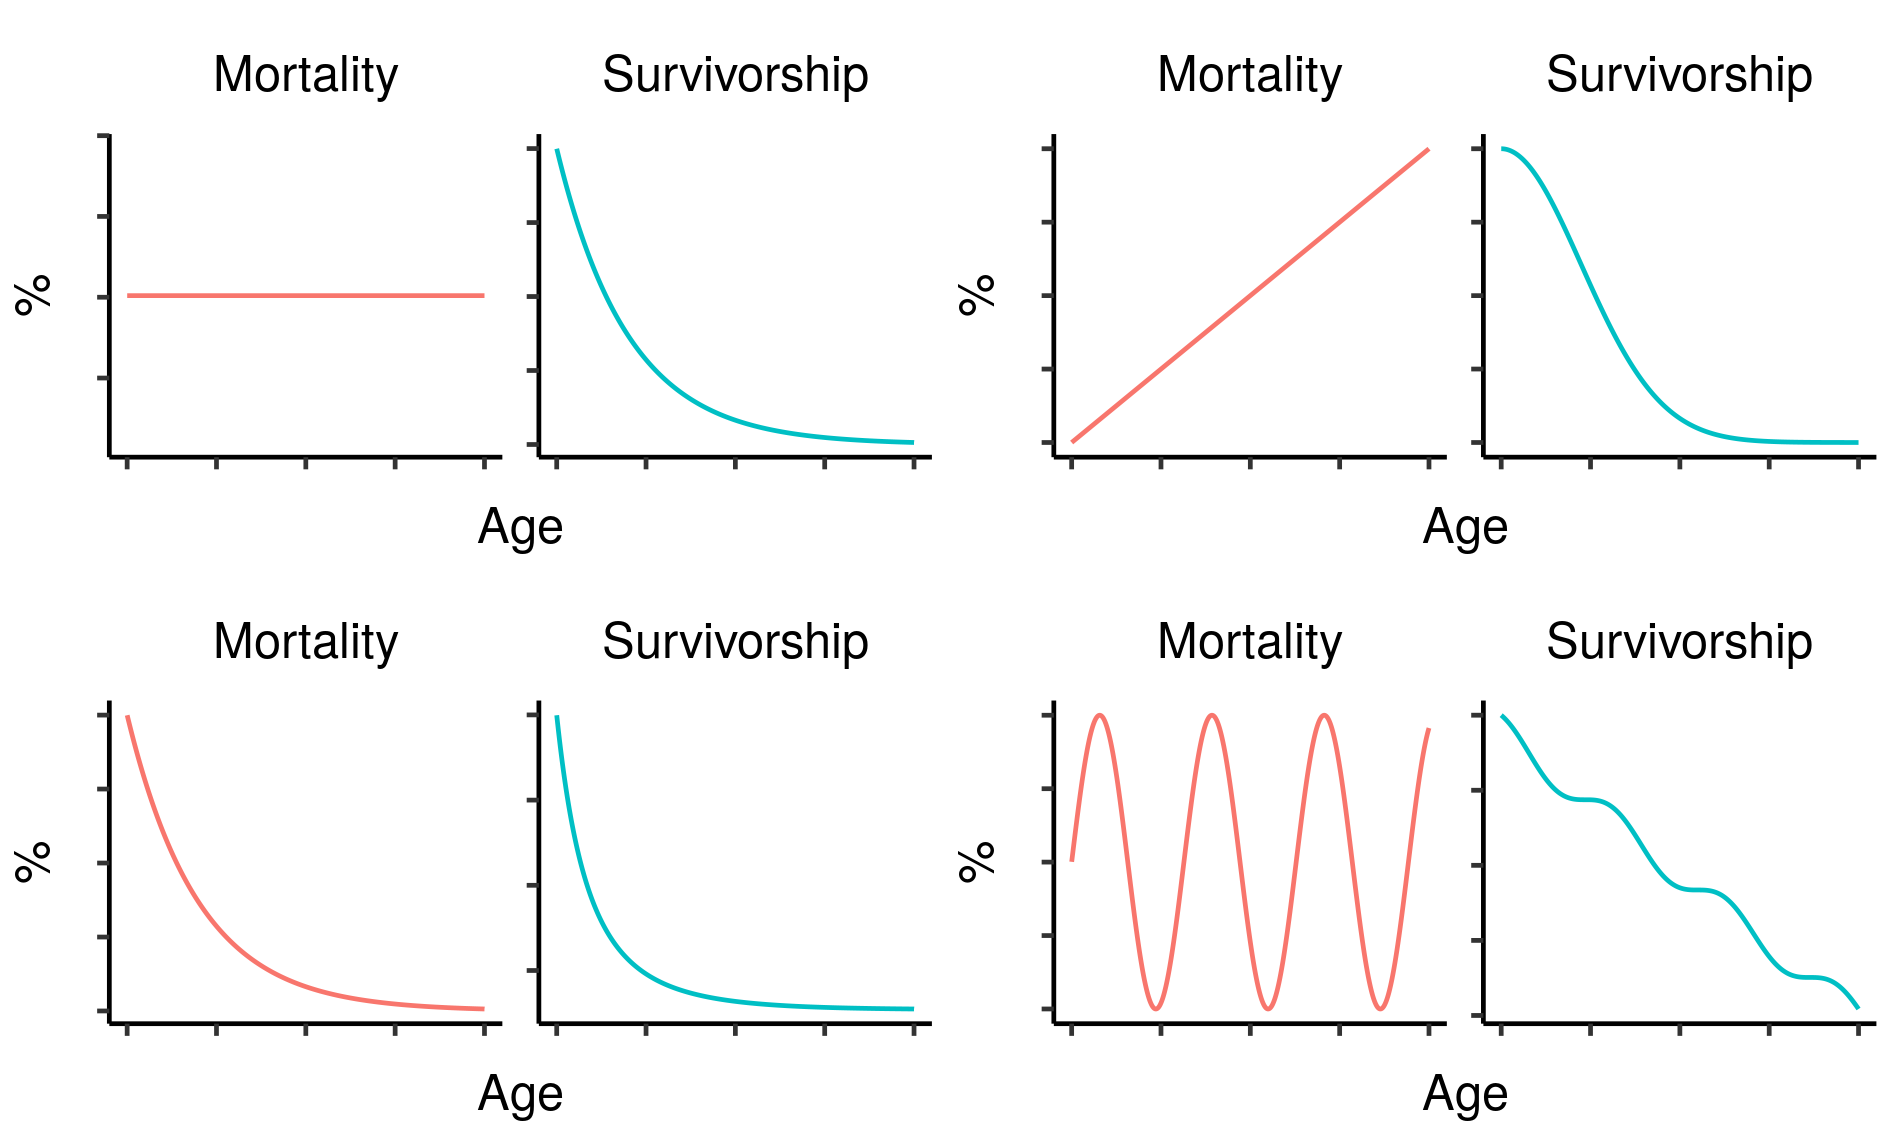 Four hypothetical mortality curves and their corresponding survivorship curves